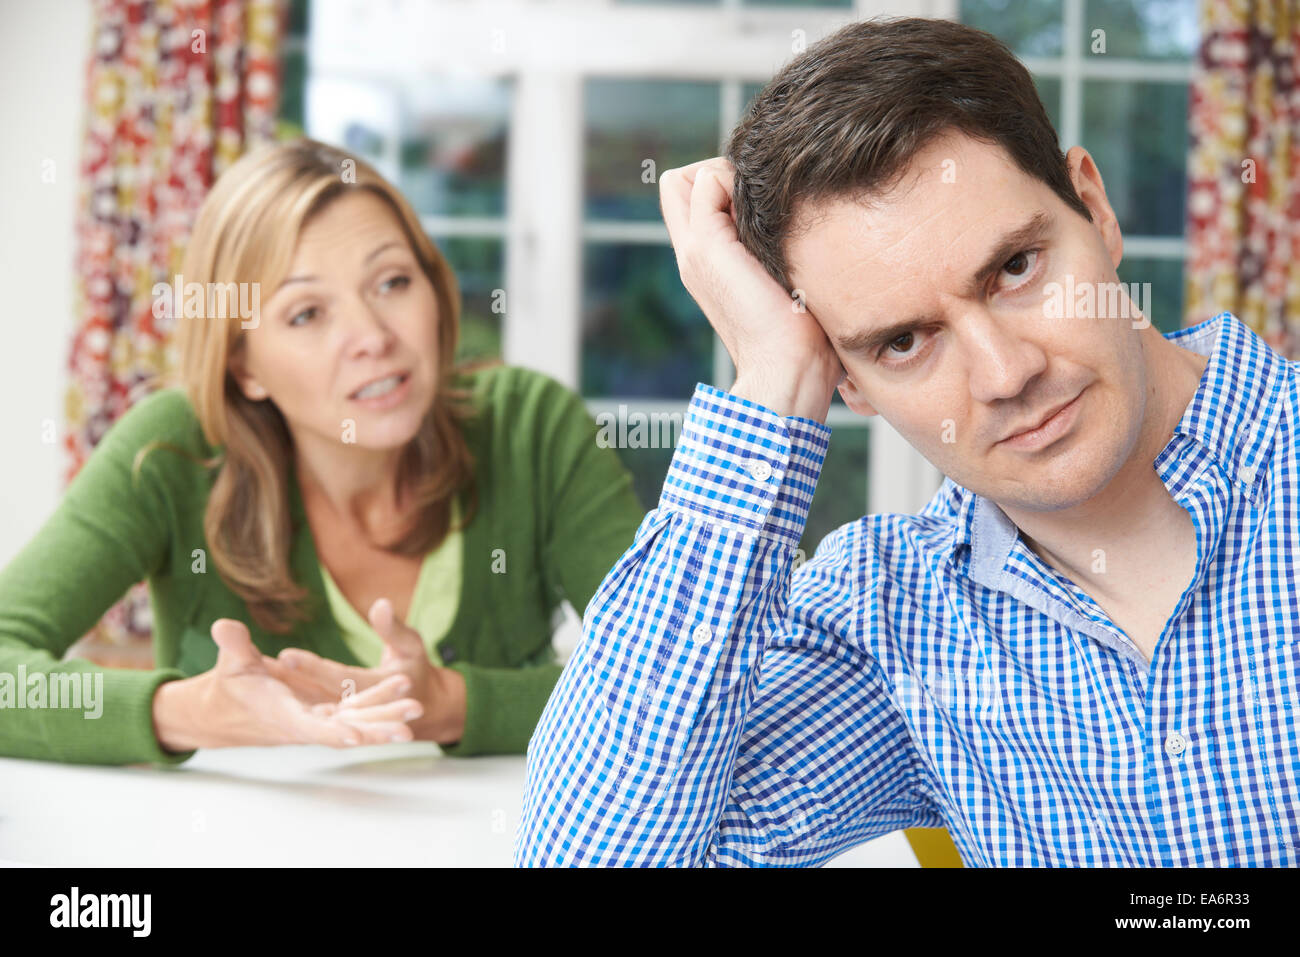 Couple Having Argument At Home - Stock Image